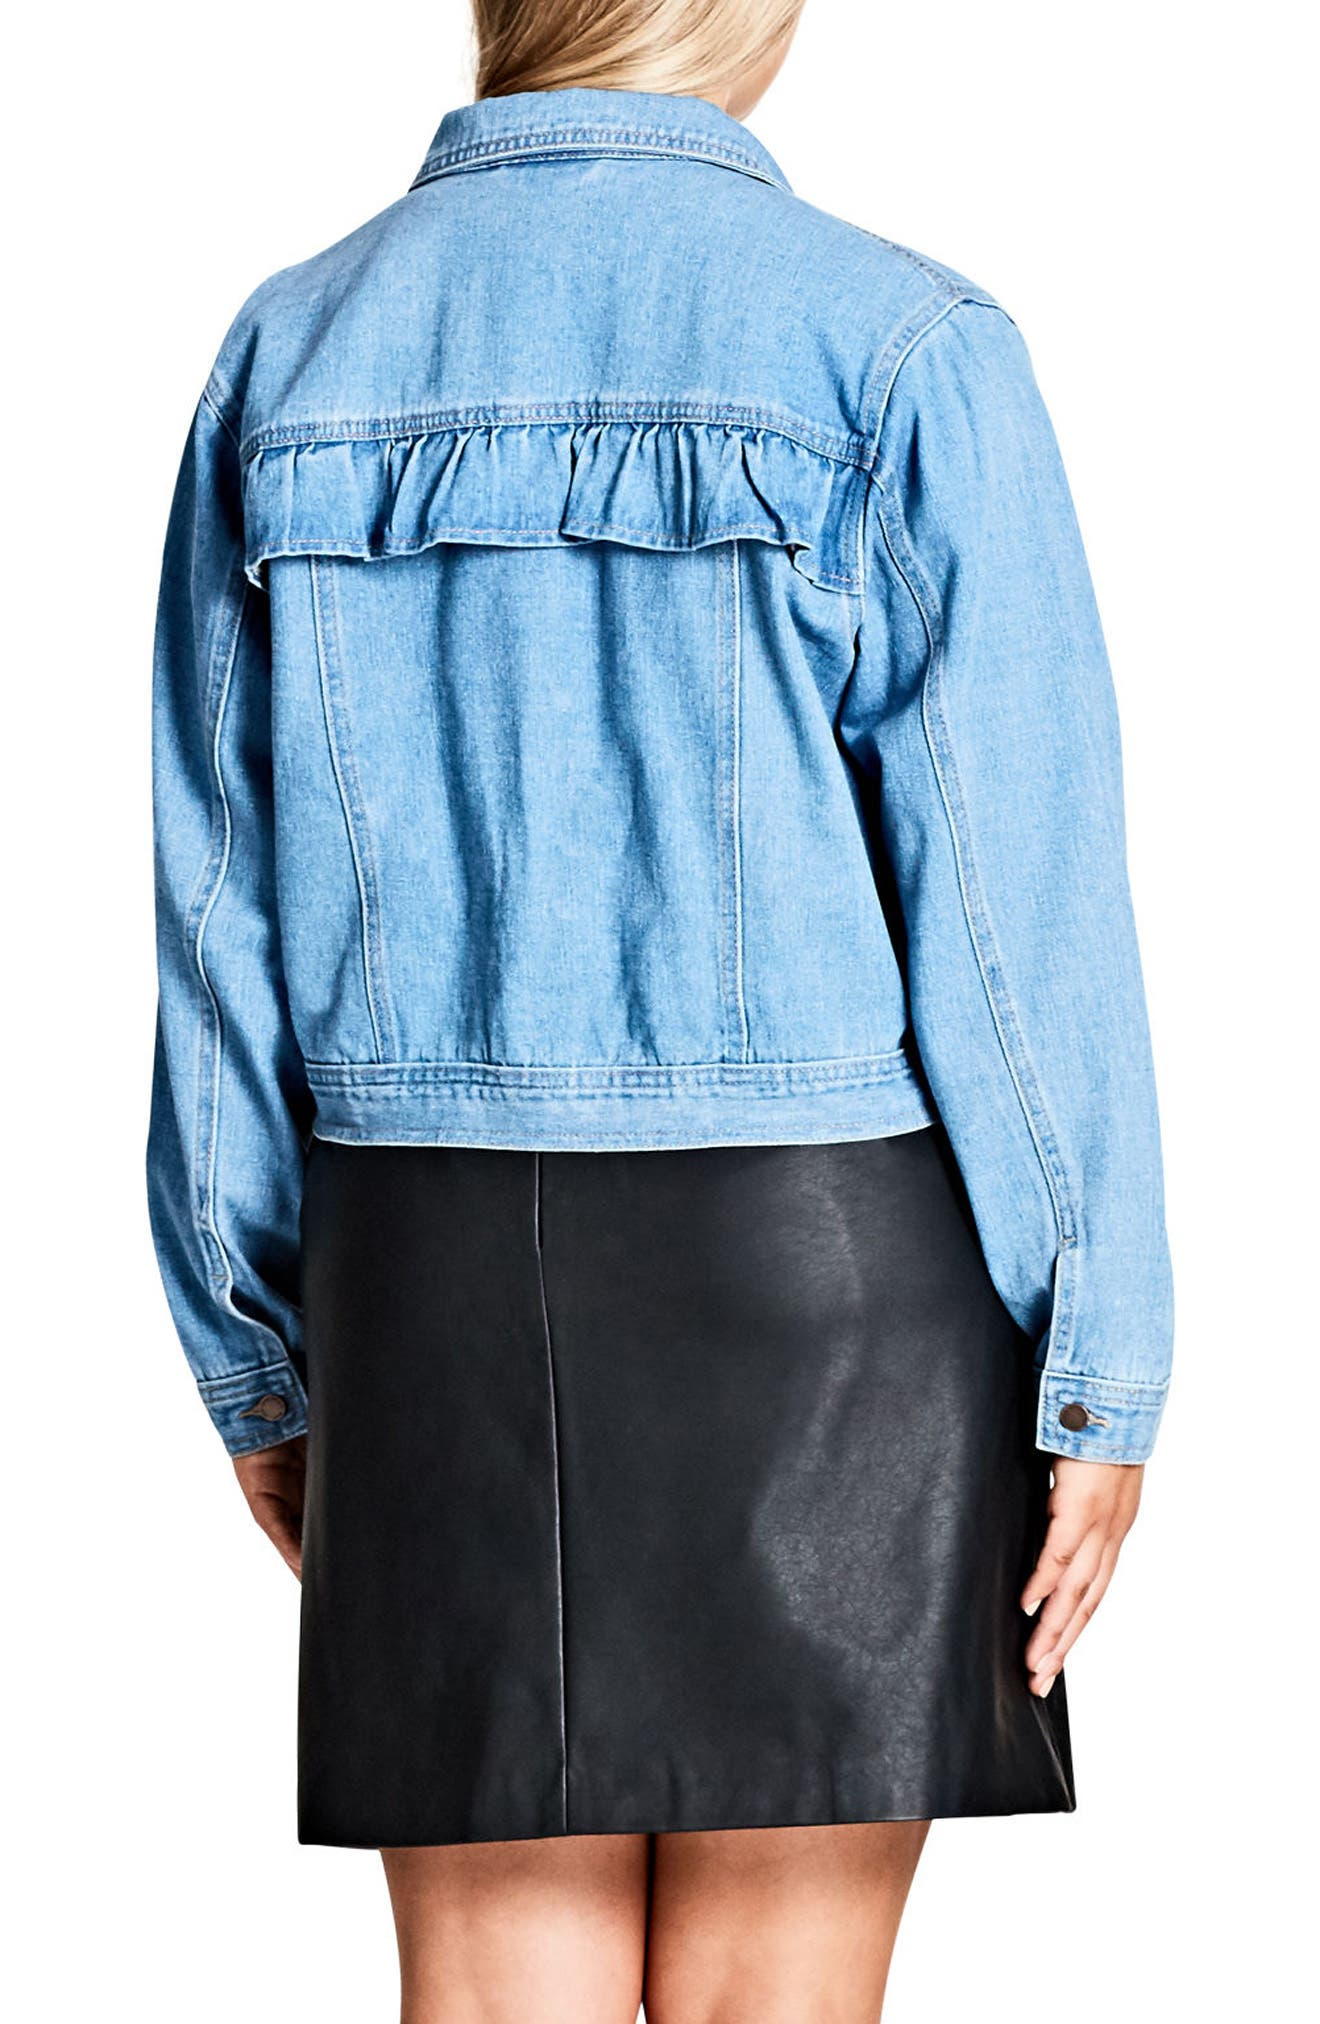 Alternate Image 2  - City Chic Ruffle Denim Jacket (Plus Size)